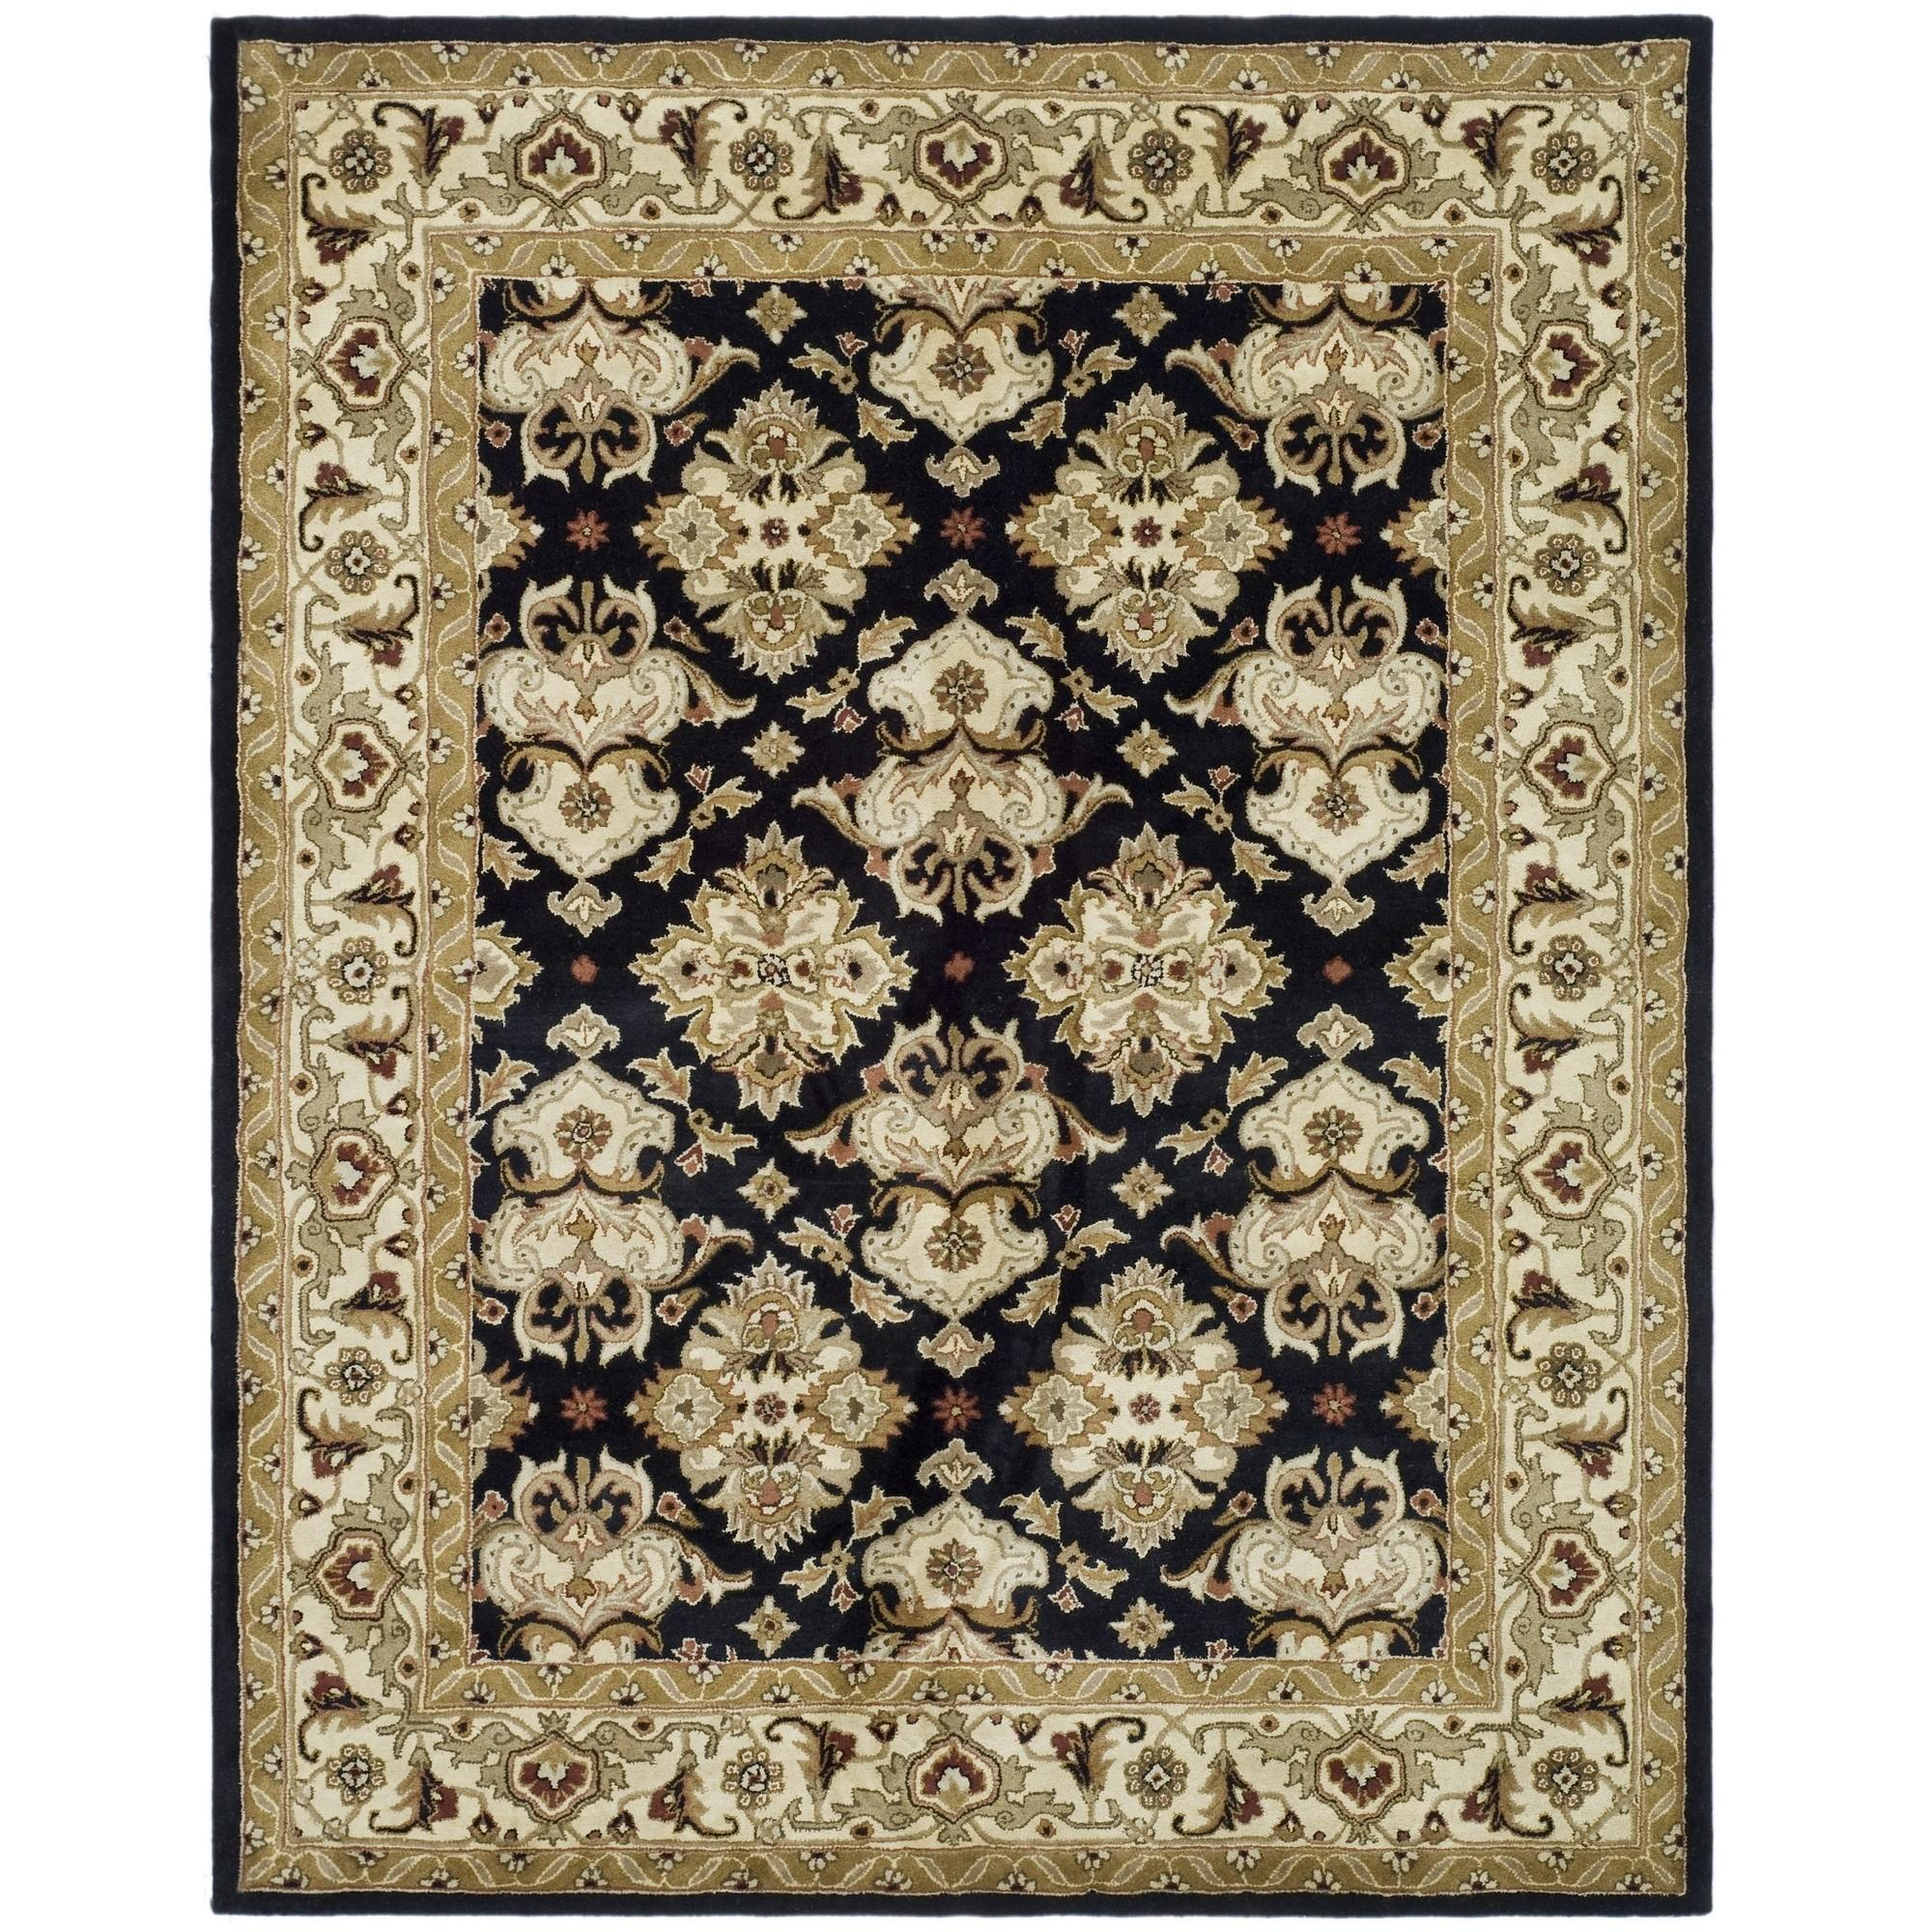 Safavieh Hand Tufted Heritage Black Ivory Wool Area Rugs